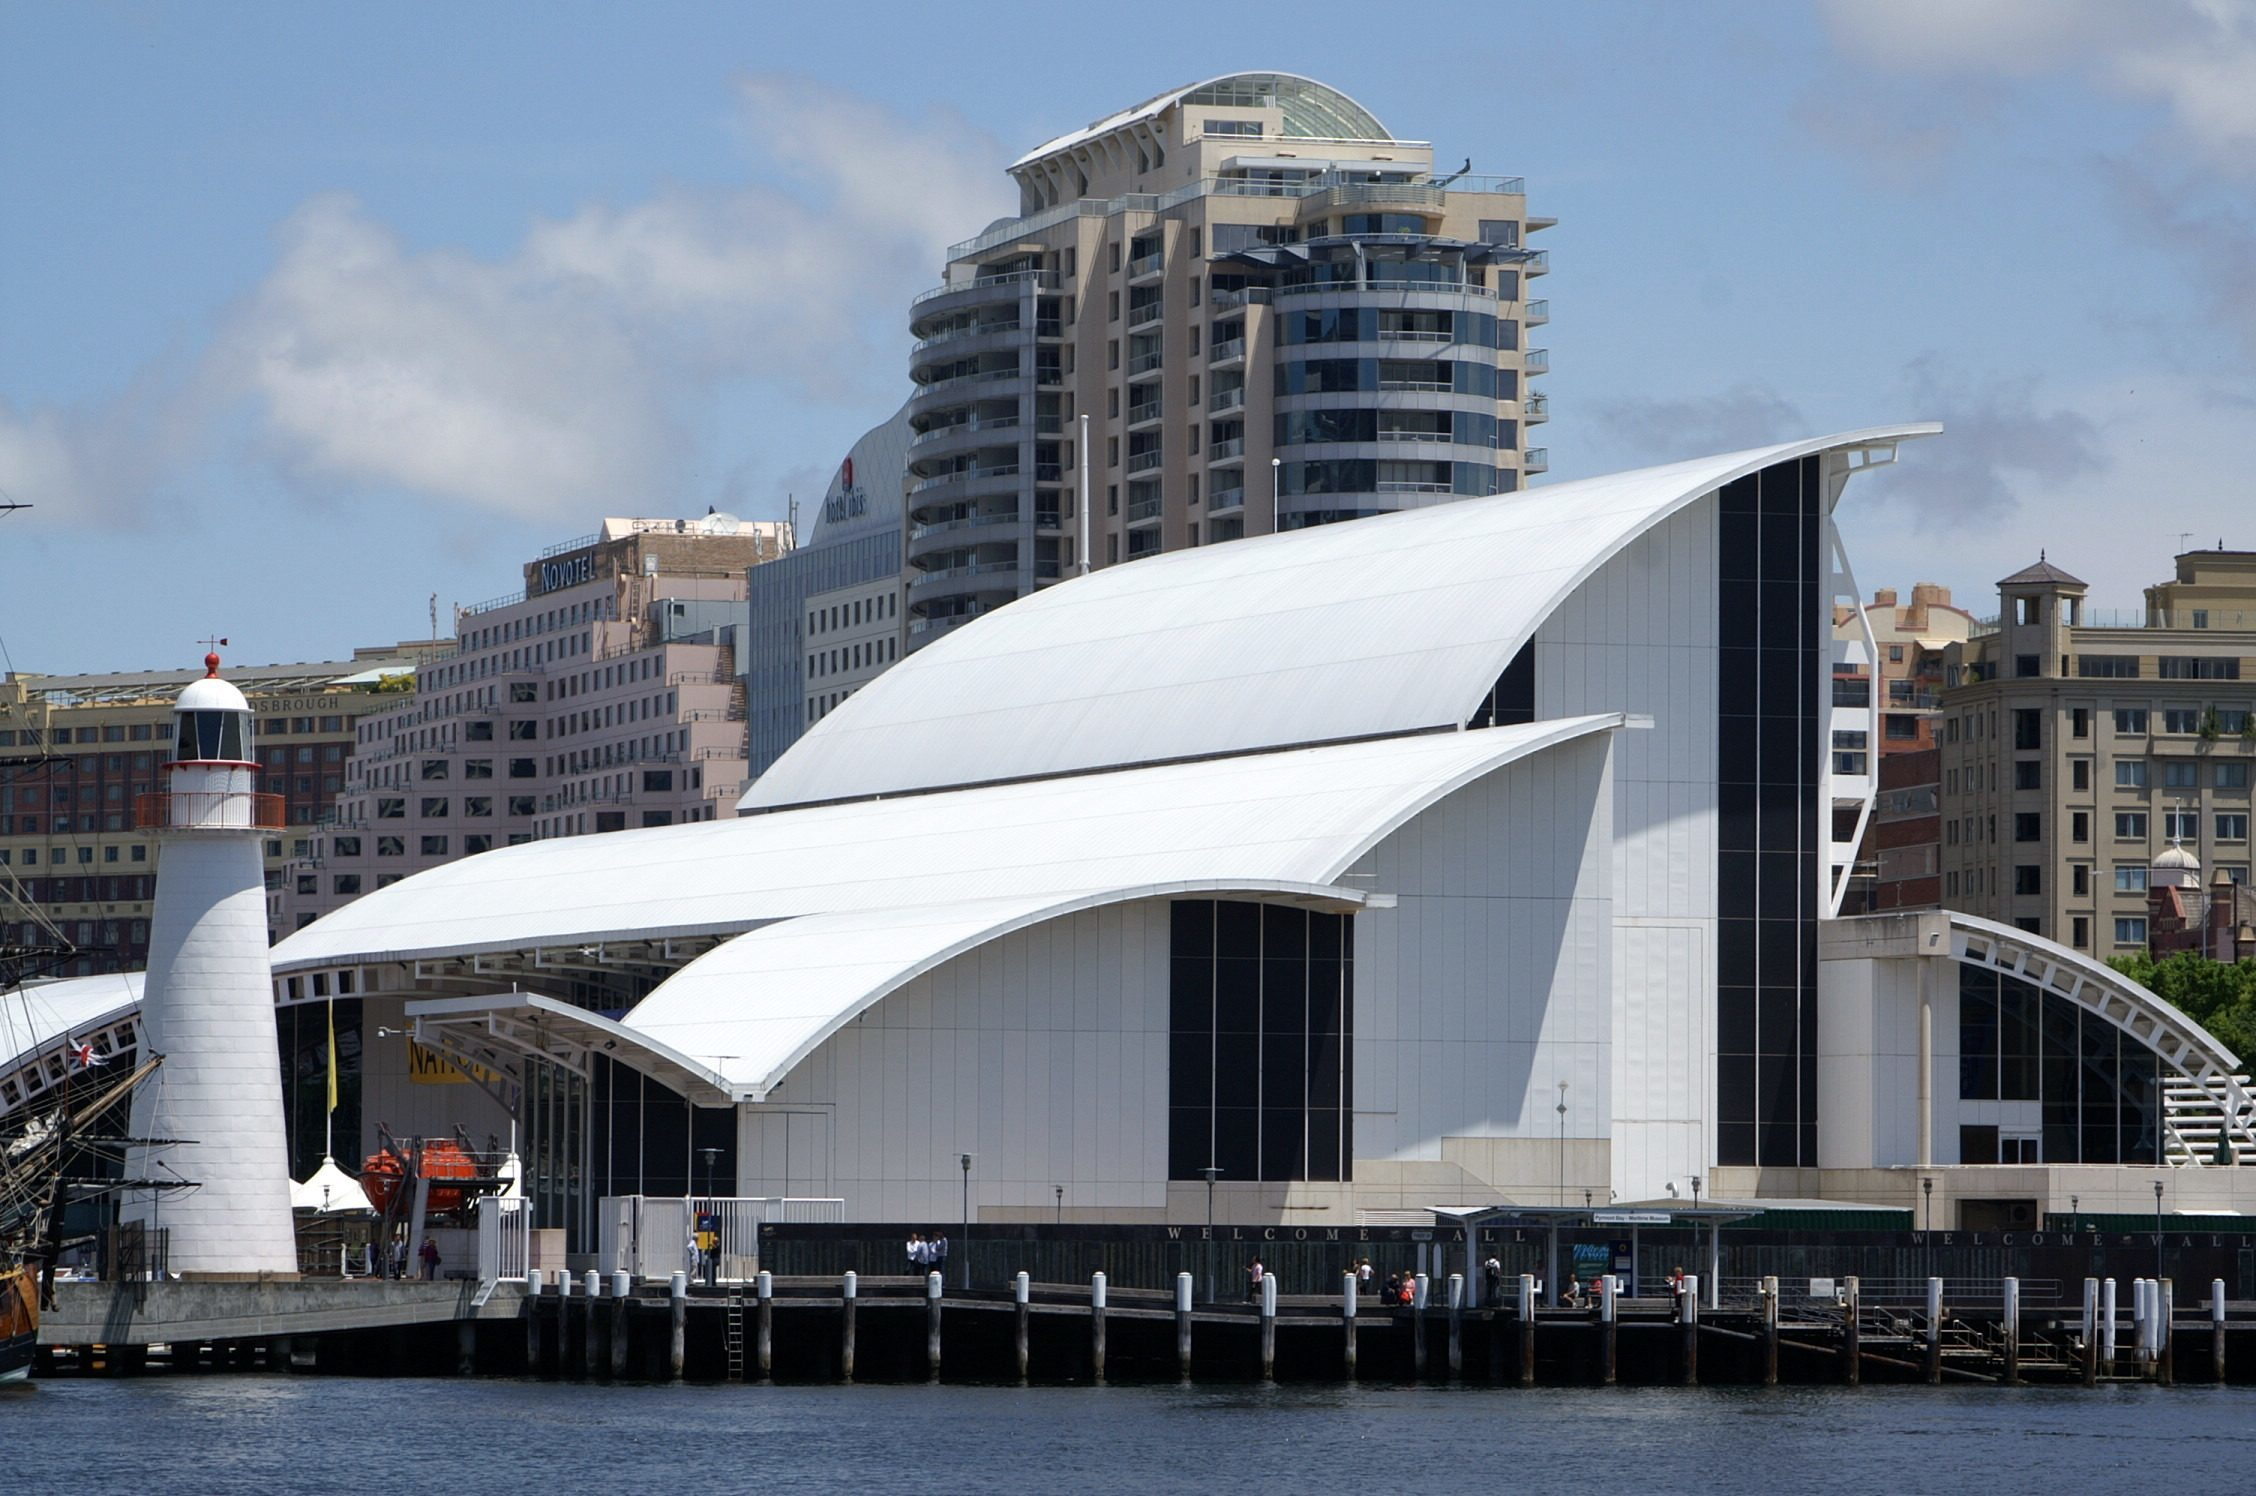 Sydney Maritime Museum in Darling Harbour